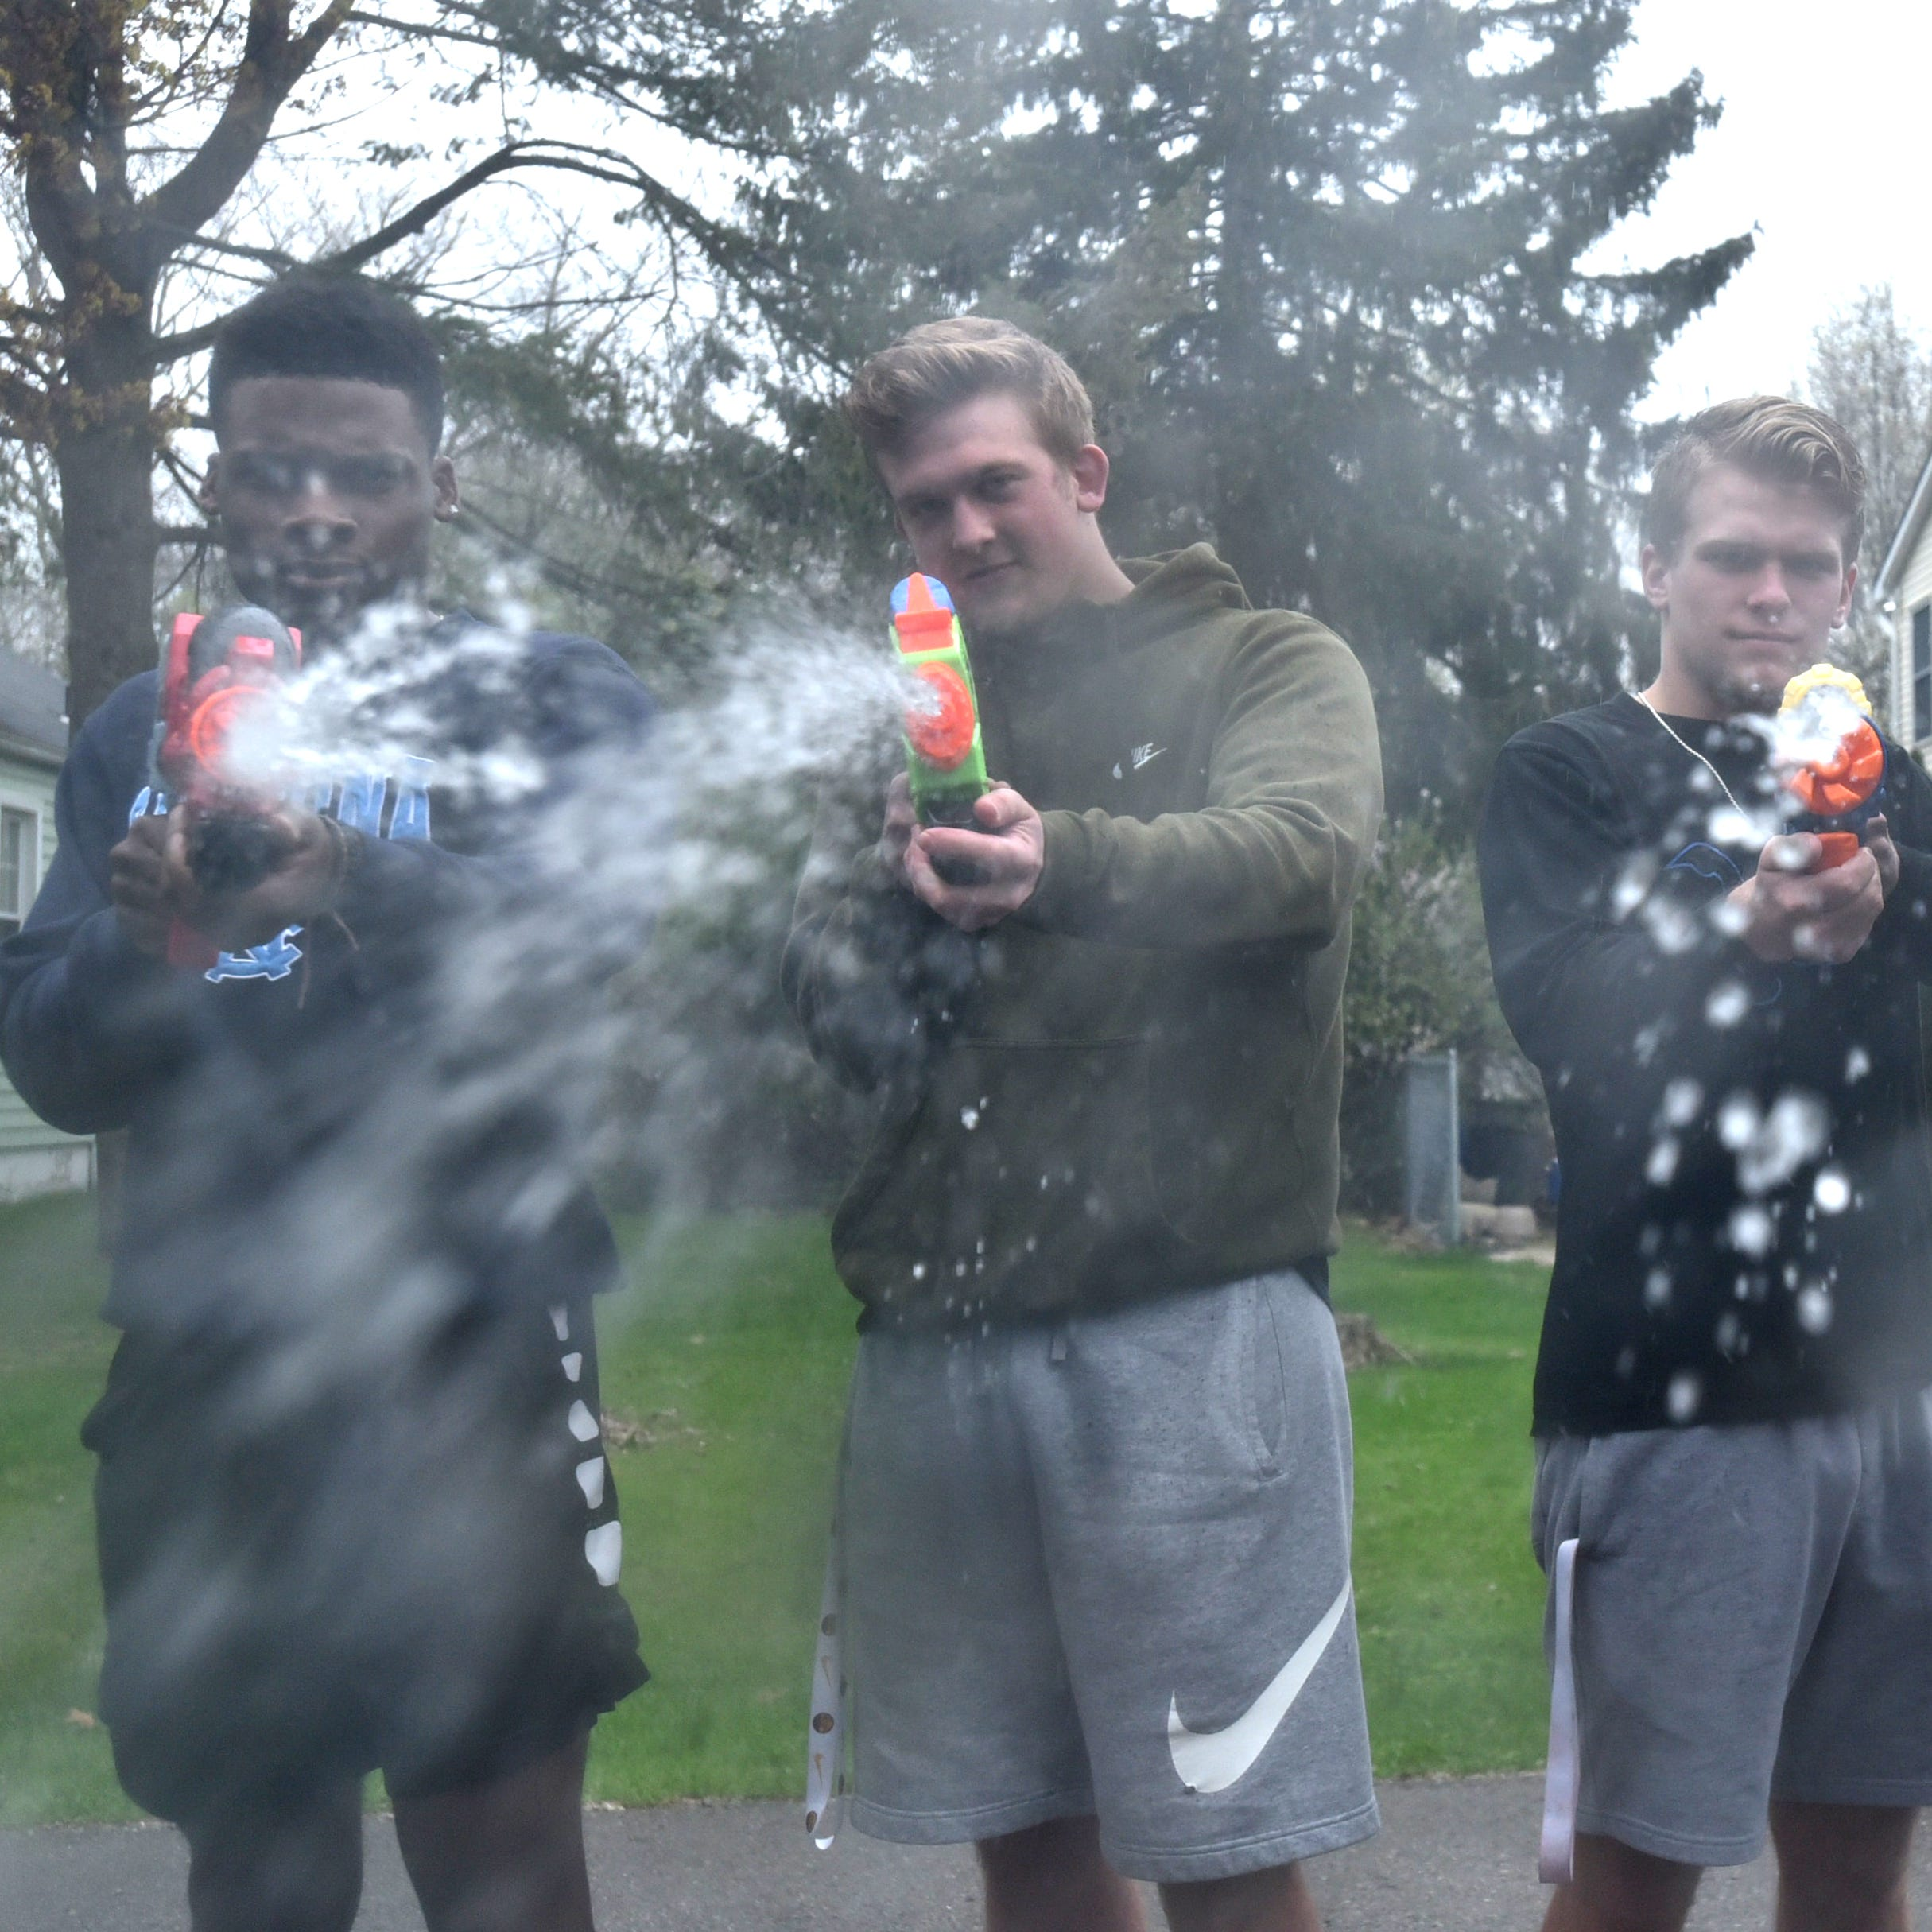 Water Wars bring out the survivor instincts in high school seniors